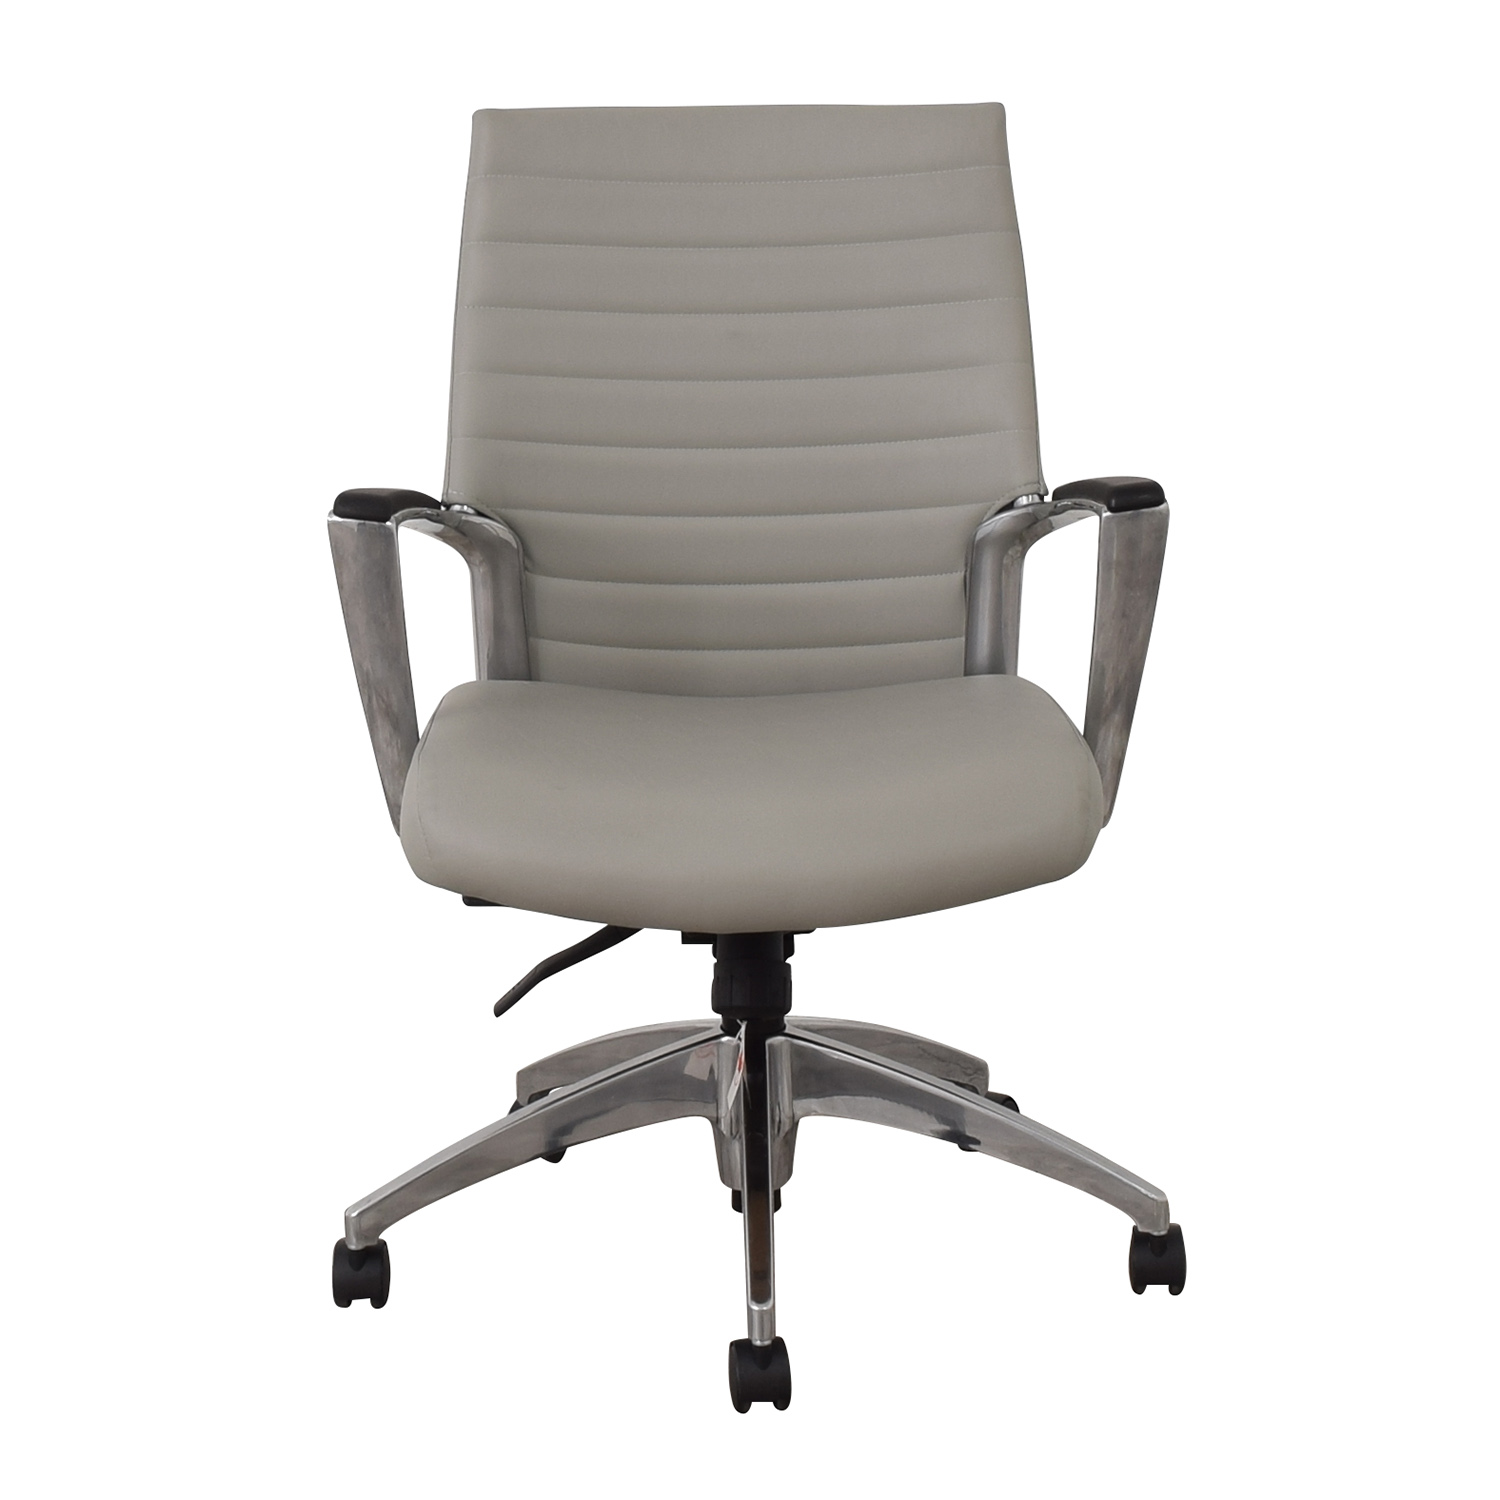 Global Global Accord Upholstered Medium Back Tilter Chair coupon